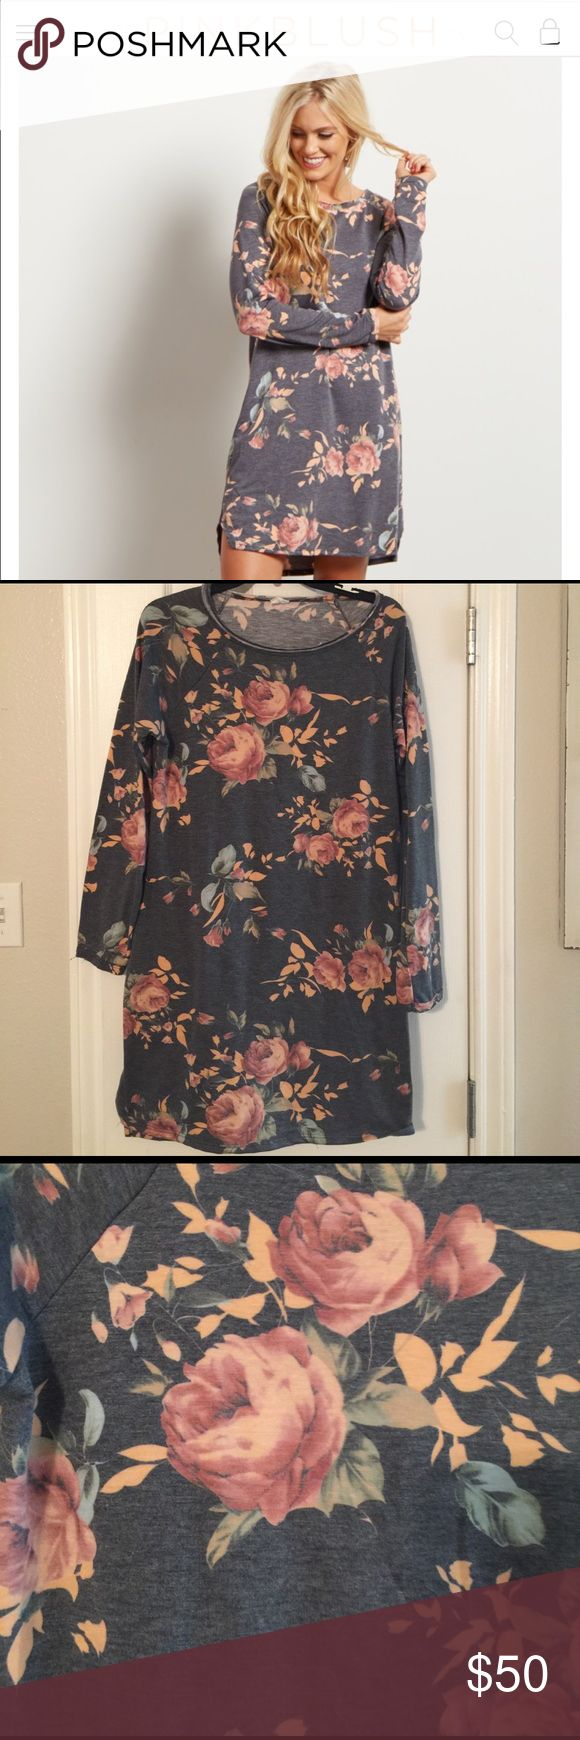 2 floral PinkBlush maternity dresses/ 1 cardigan *GREAT DEAL 3 items!!  1st dress is grey sweater material with peach floral. 2nd dress is green with camel suede top both size Large. I'm usually a medium but pink blush dresses that are shorter have to size up. Last is the cardigan size M with shades of grey/cream and tans. All in great condition. Pinkblush Dresses